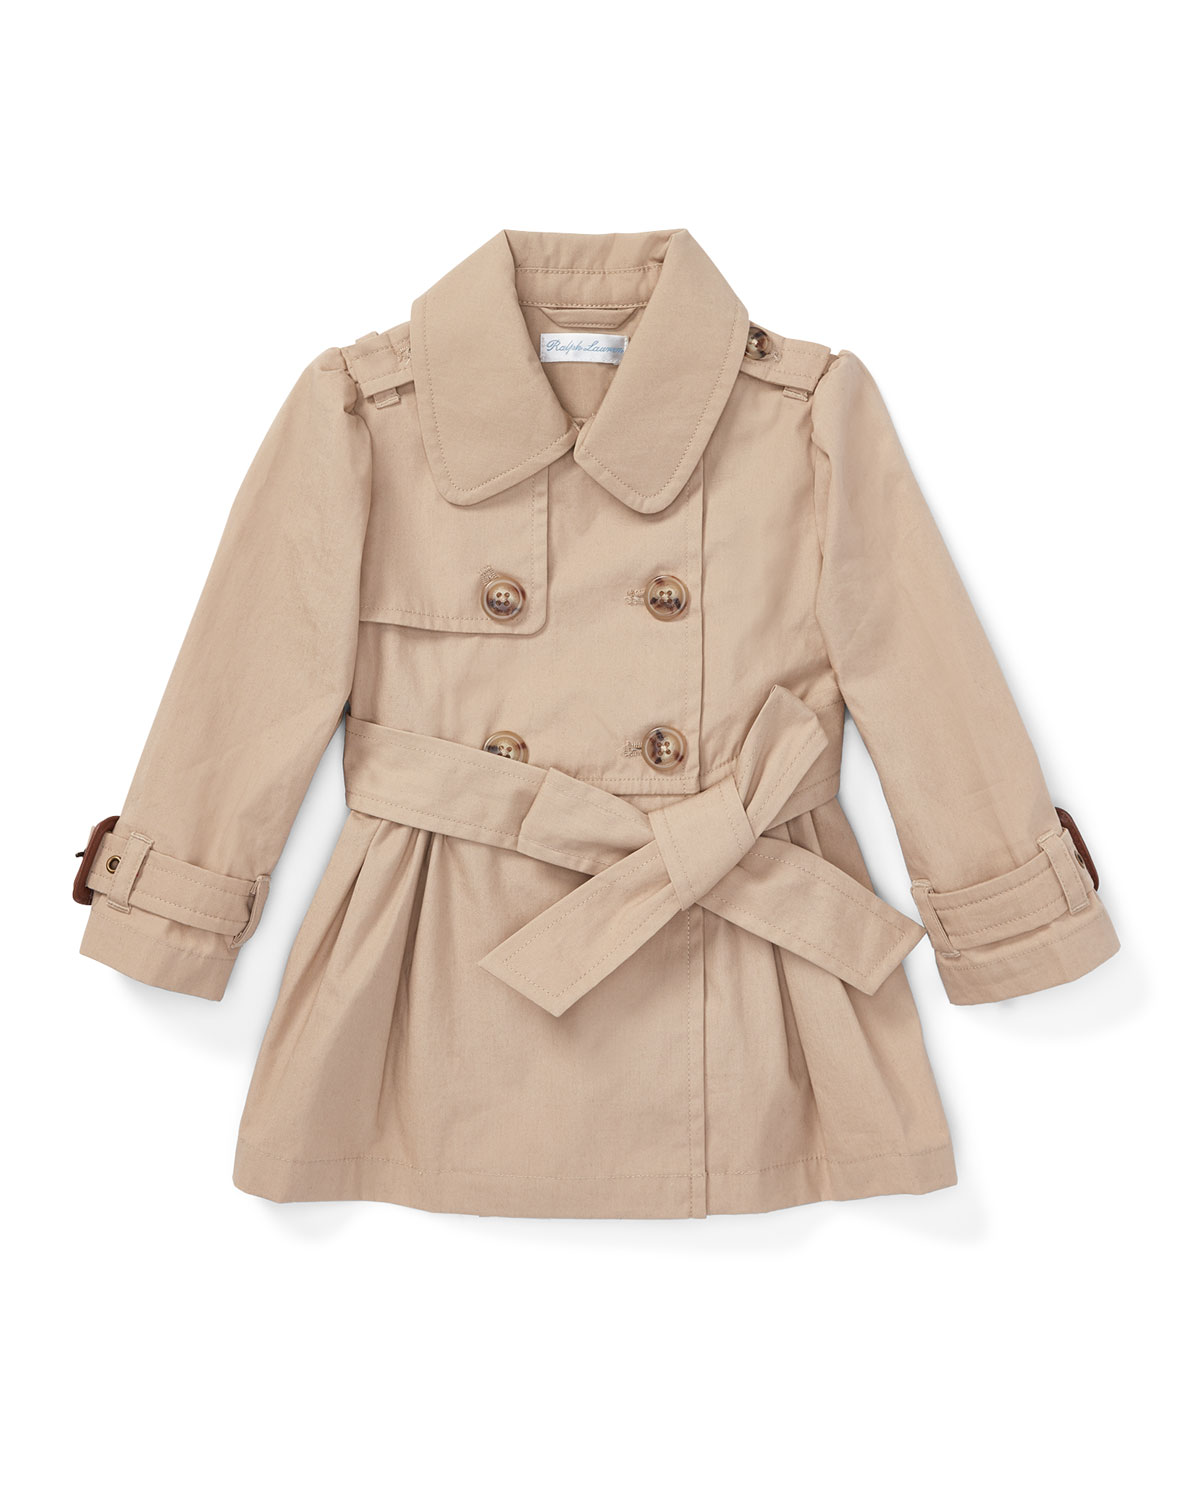 High Density Cotton Trench Coat, Size 12-14 Months